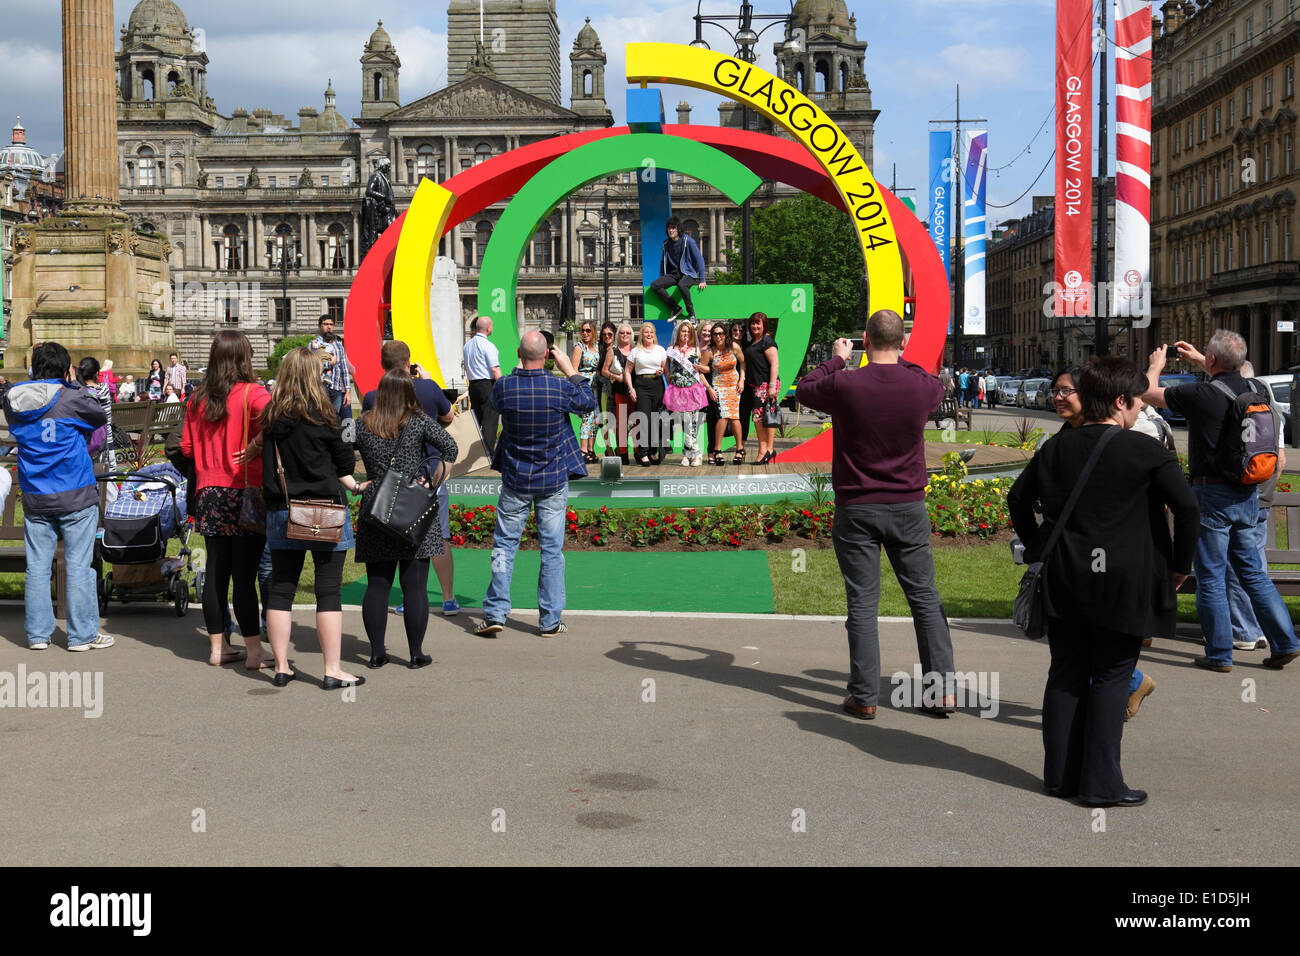 Glaswegians and visitors to the city exploring the Glasgow 2014 Commonwealth Games Logo on George Square in Glasgow city centre, Scotland, UK - Stock Image